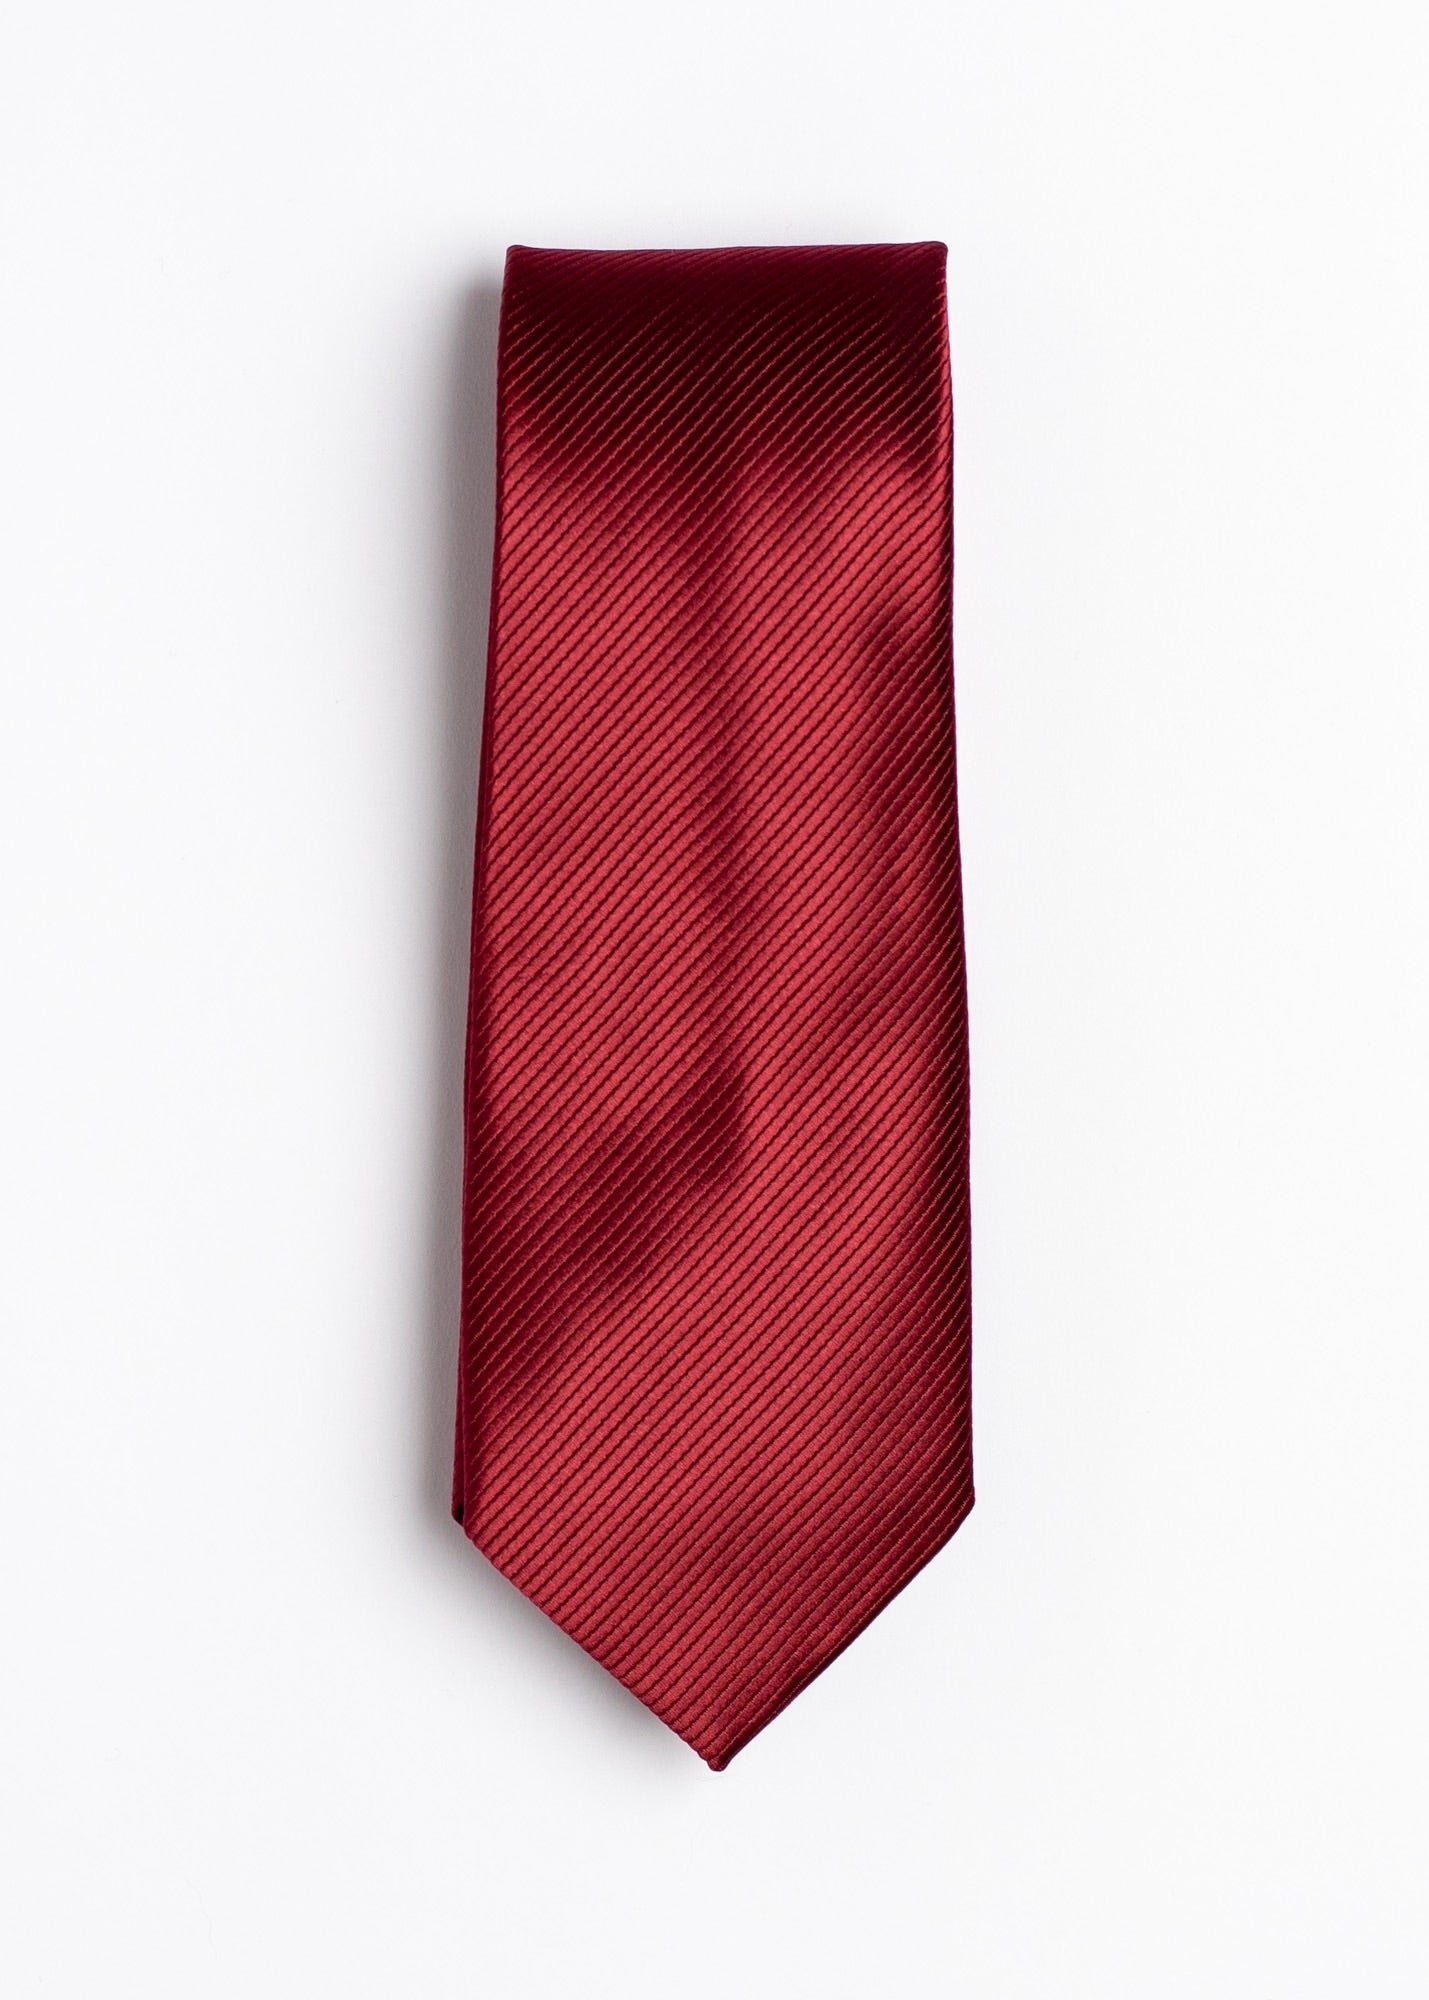 handmade plain red tie - Oxford Square